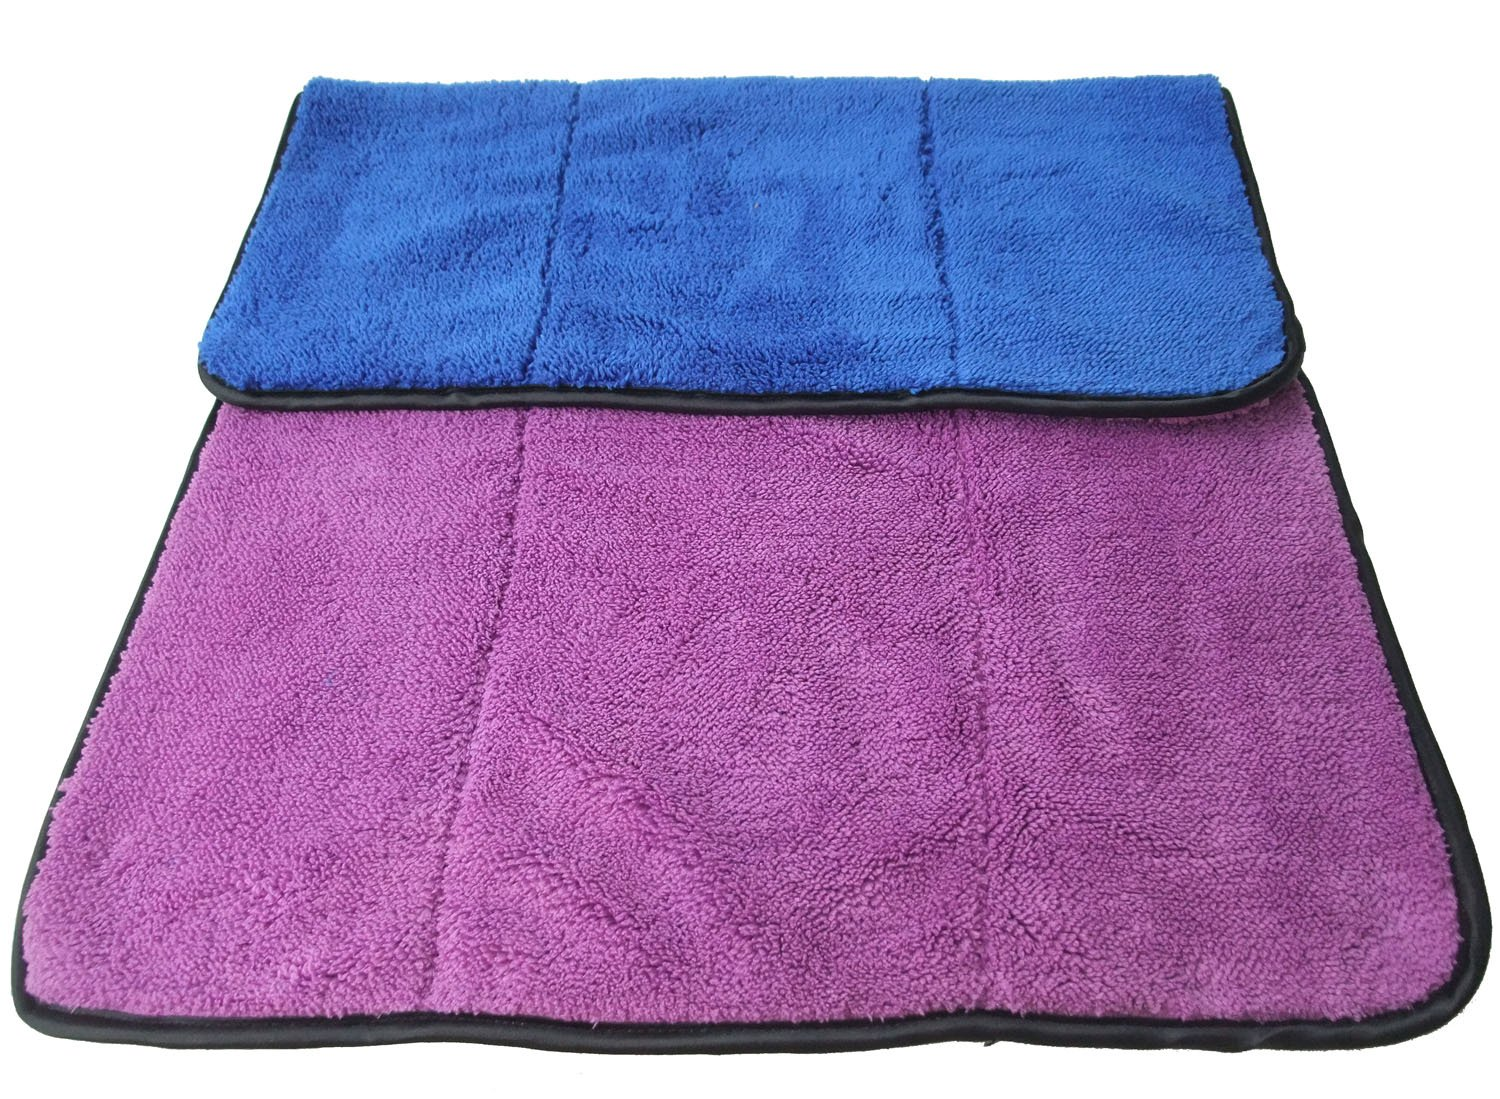 16x24, Blue//green Microfiber Car Cleaning Towels Ultra Thick Car Wax Buffing Cloths Super Absorbent Drying Auto Detailing Towel